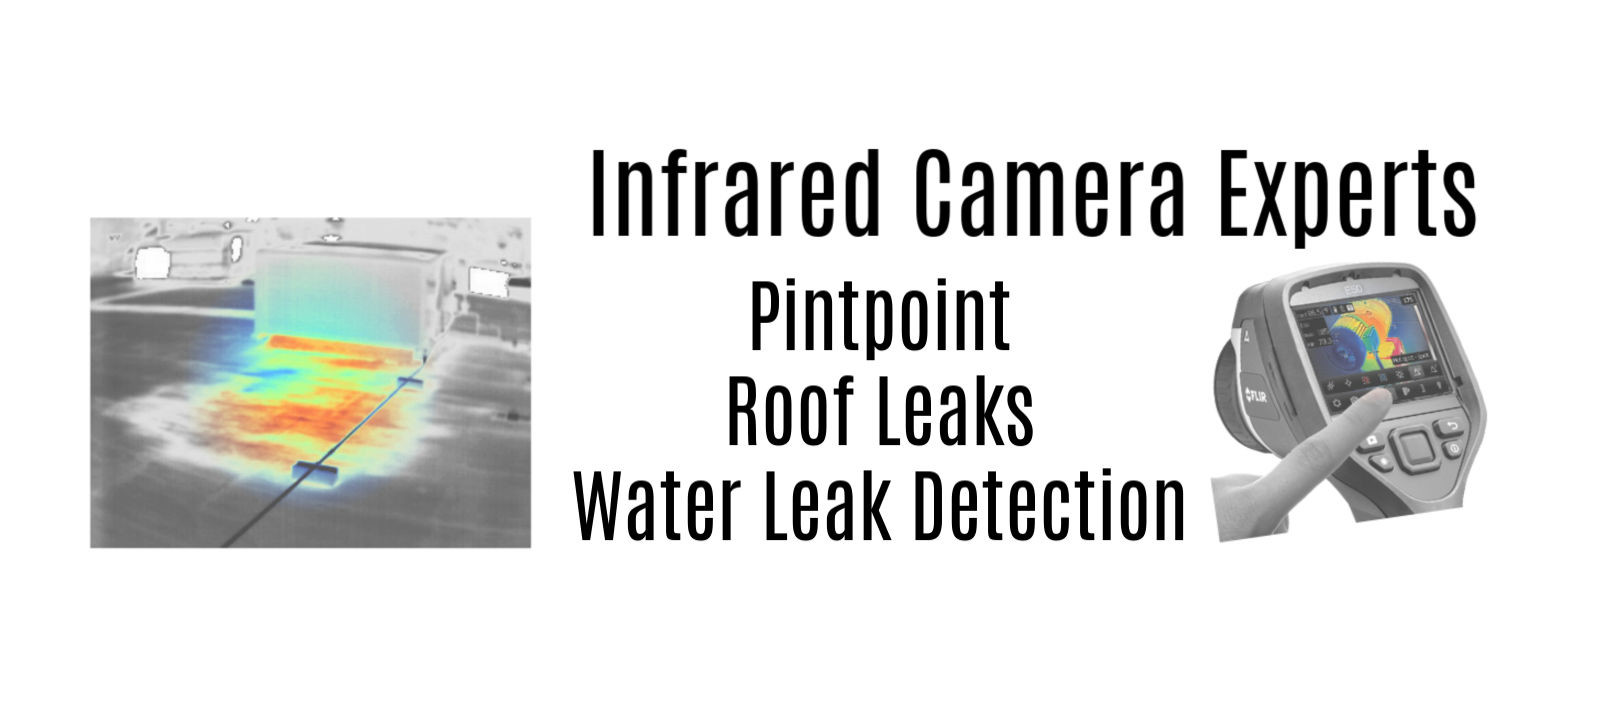 nfrared Camera Experts | Roof Leaks and Water Leak Detection!